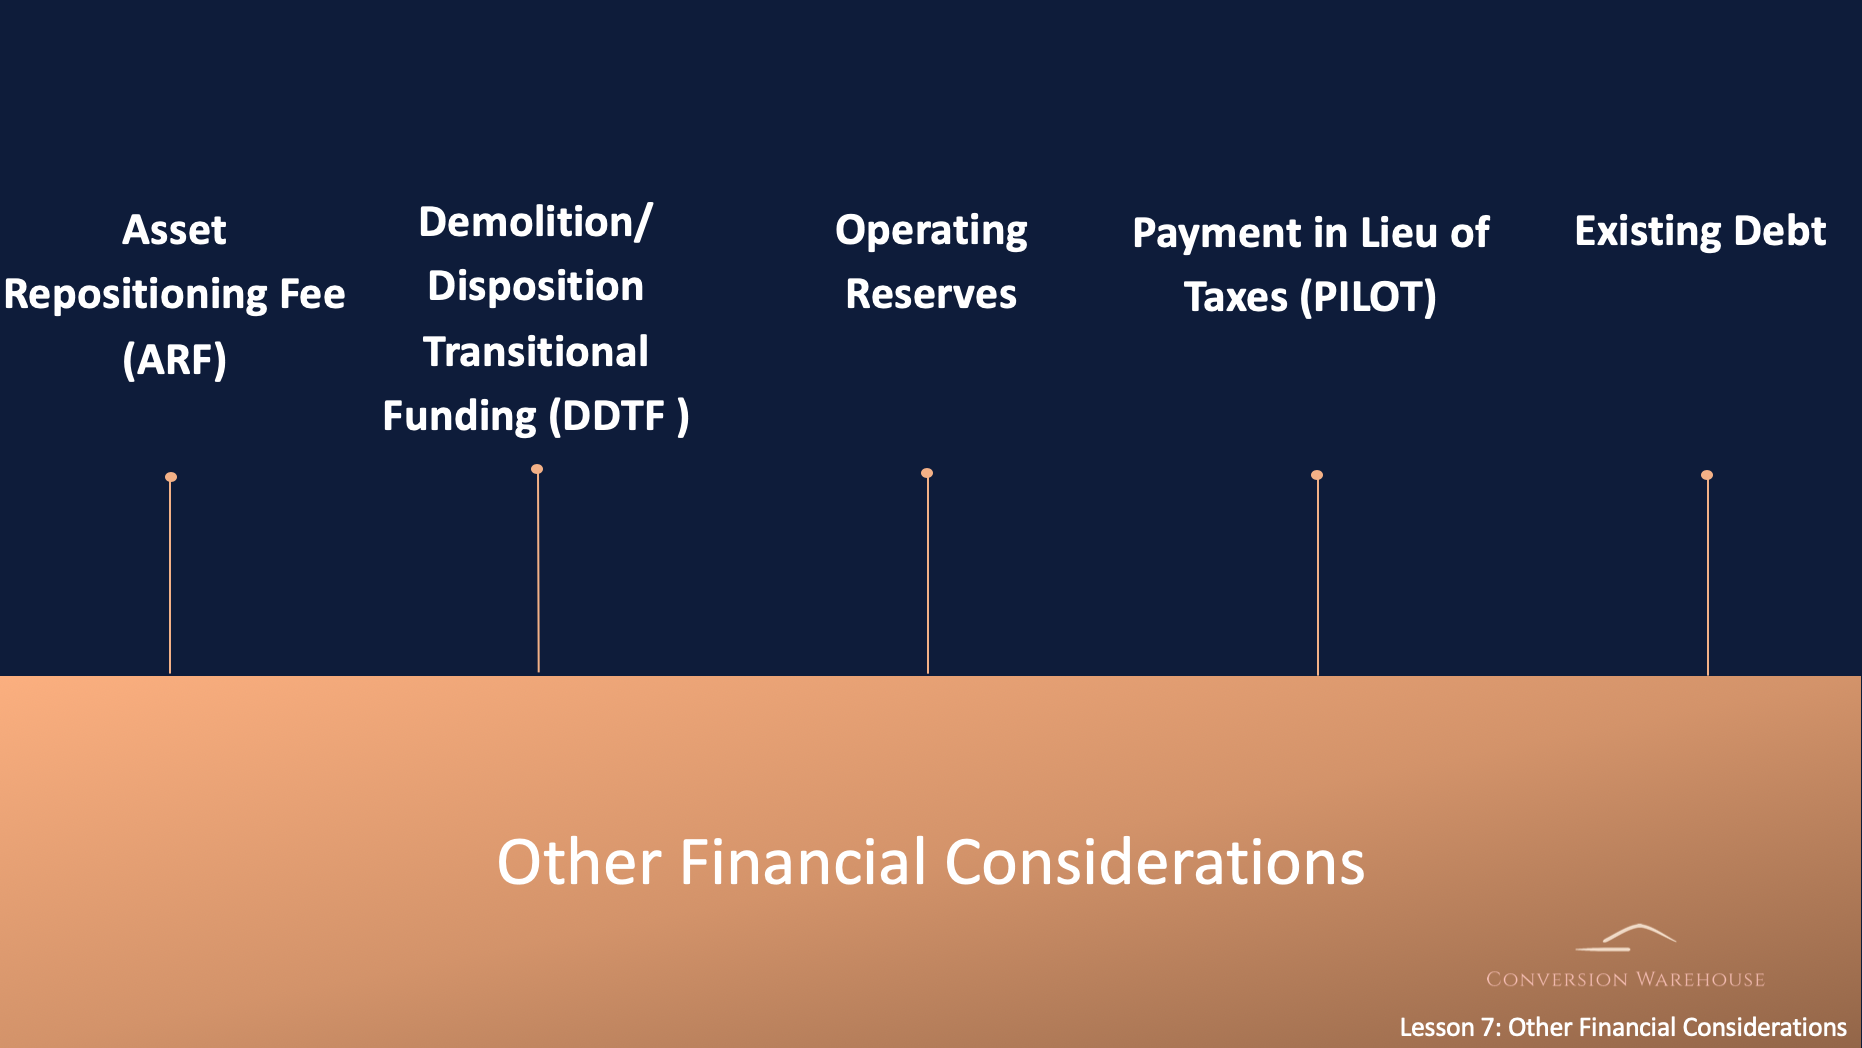 Other financial considerations when converting to Section 8